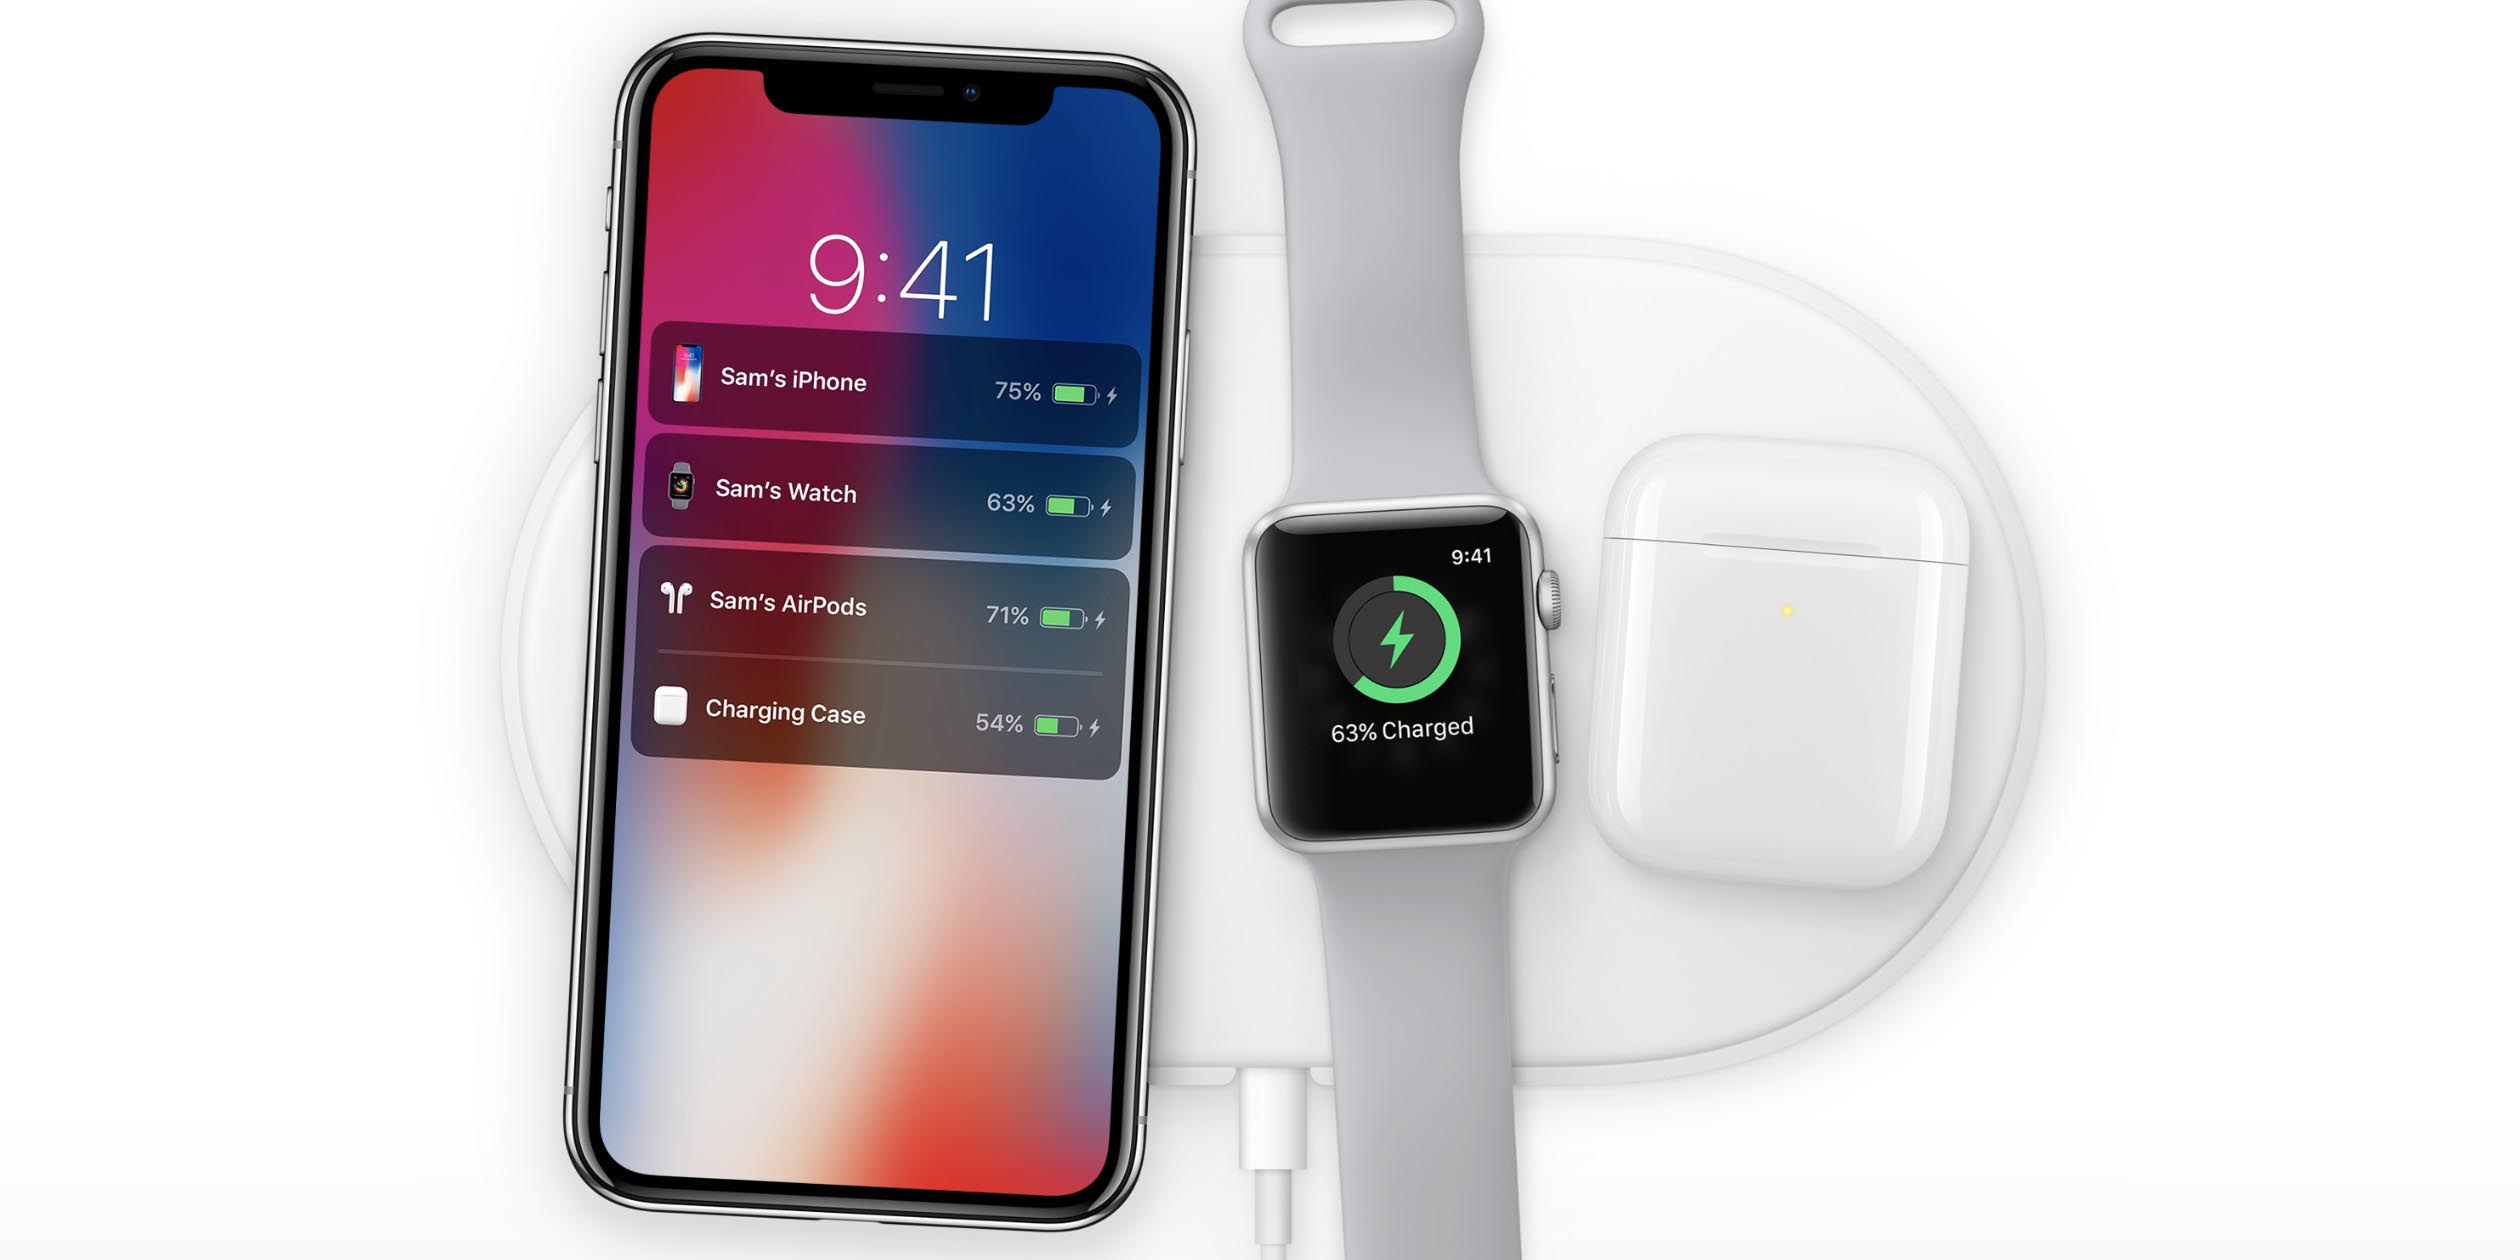 Future Apple AirPods: New Exciting Details Emerge